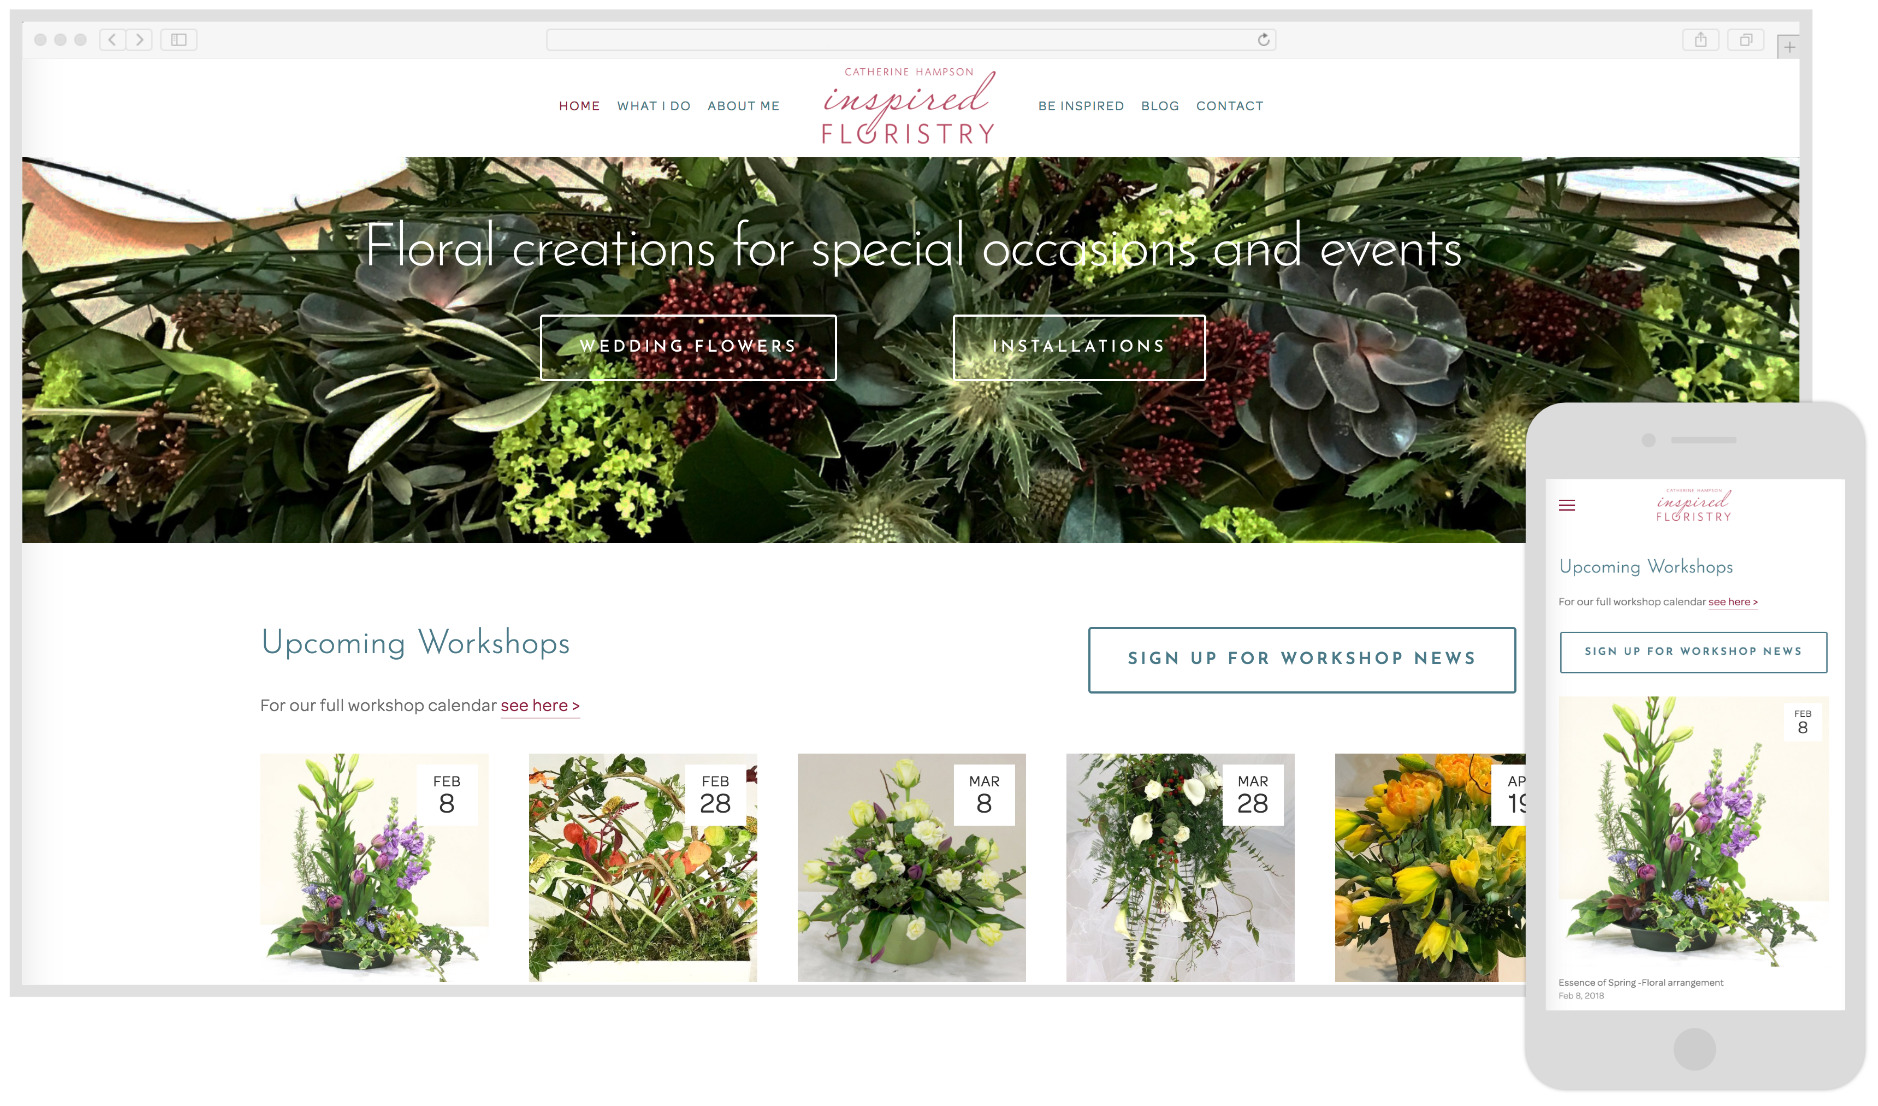 Inspired-floristry-website-design.jpg